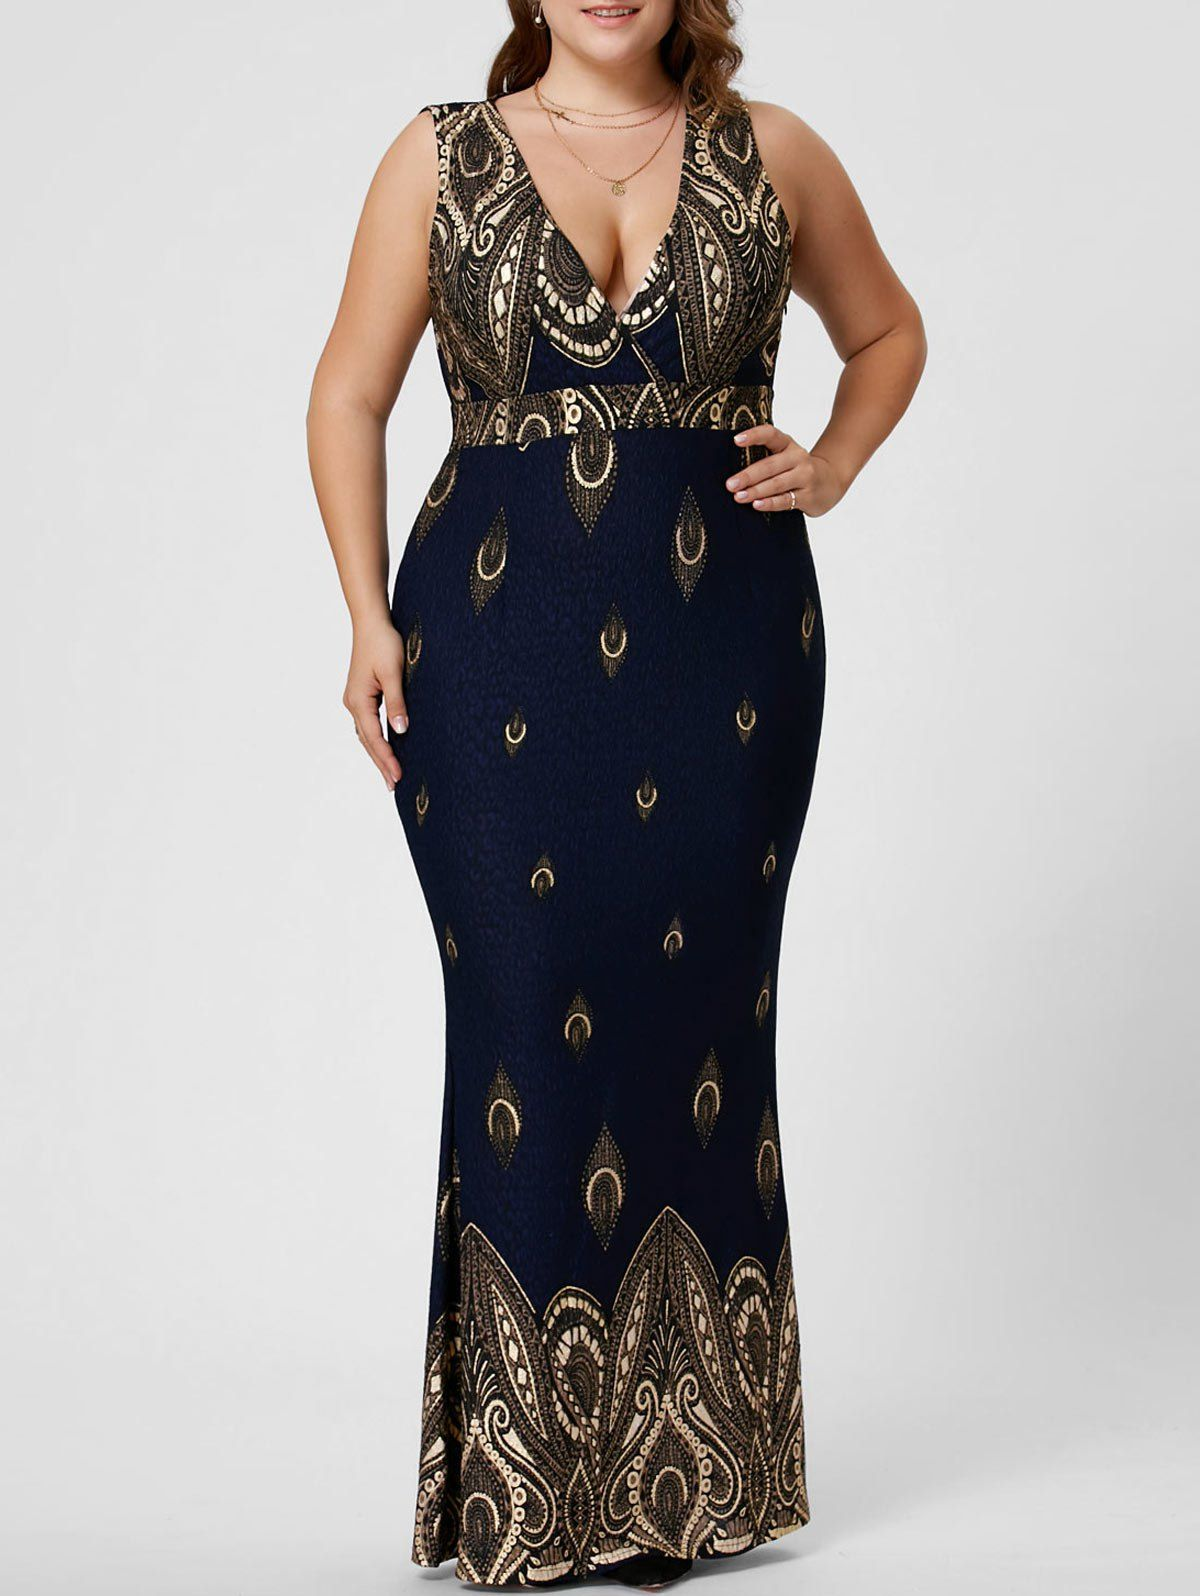 0c4c9be5de SHARE & Get it FREE | Plus Size Low Cut Sleeveless Mermaid DressFor Fashion  Lovers only:80,000+ Items • New Arrivals Daily • Affordable Casual to Chic  for ...